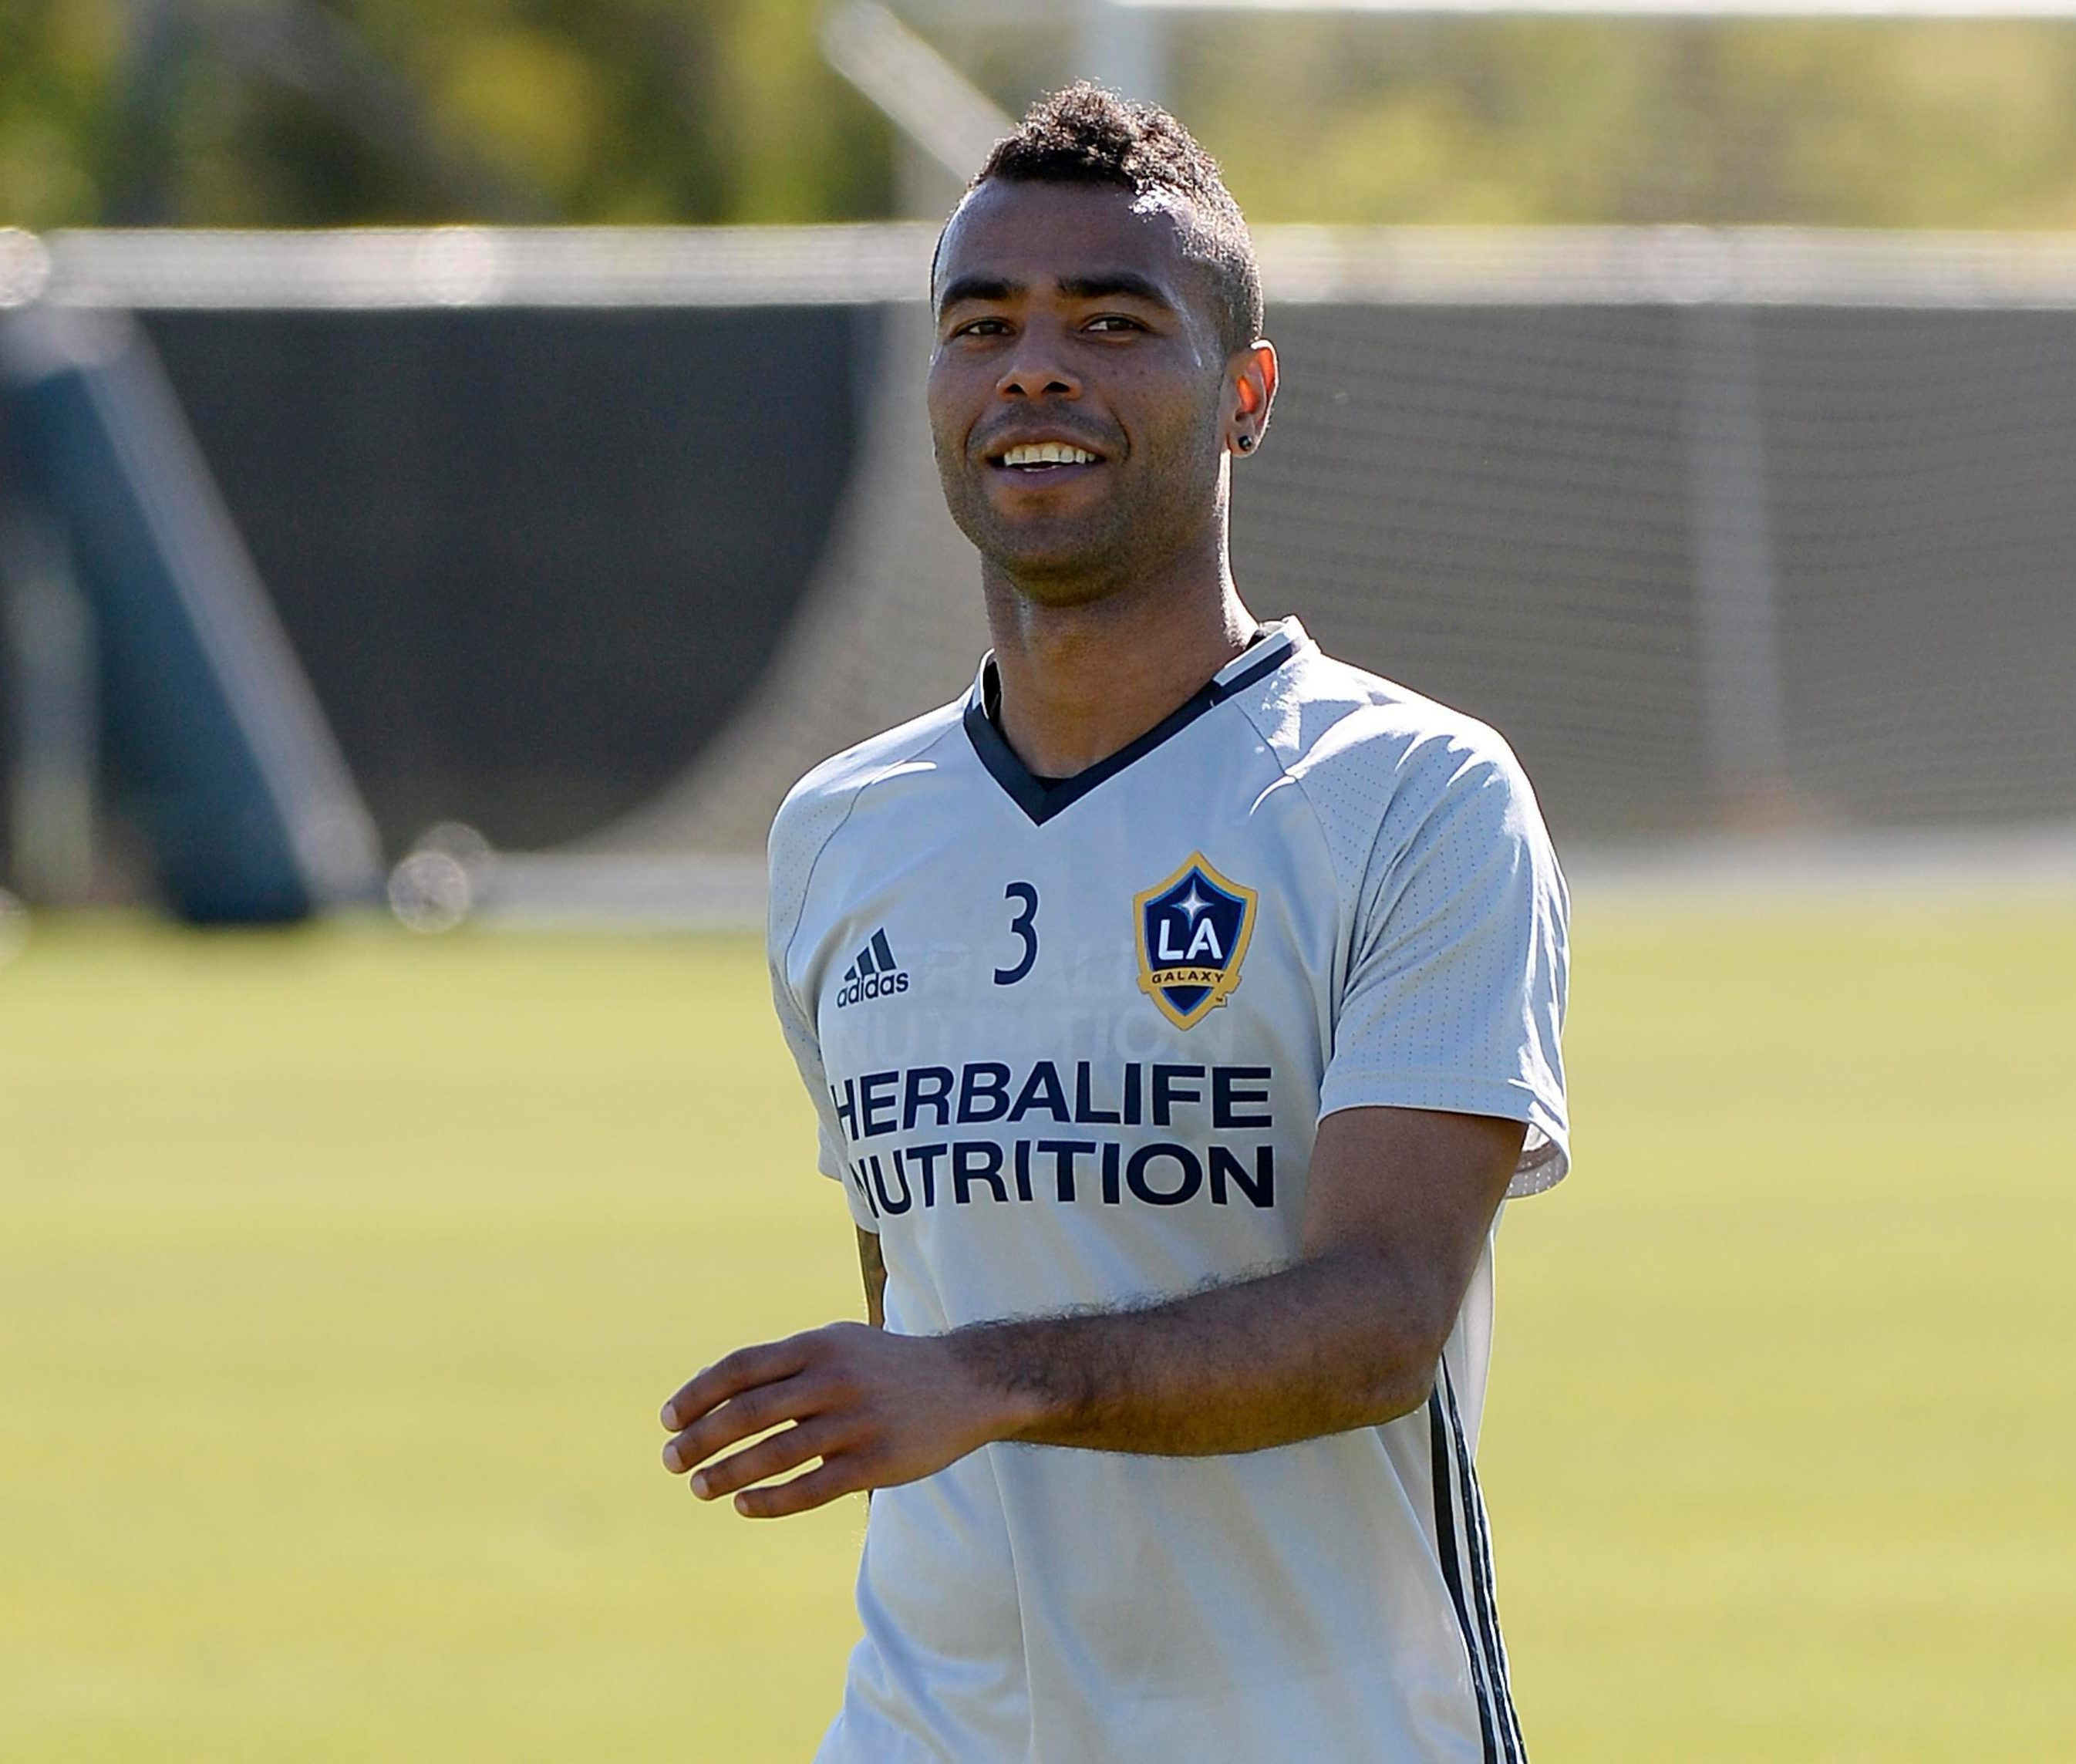 Chelsea legend and former Arsenal star Ashley Cole signs new one-year contract at MLS side LA Galaxy